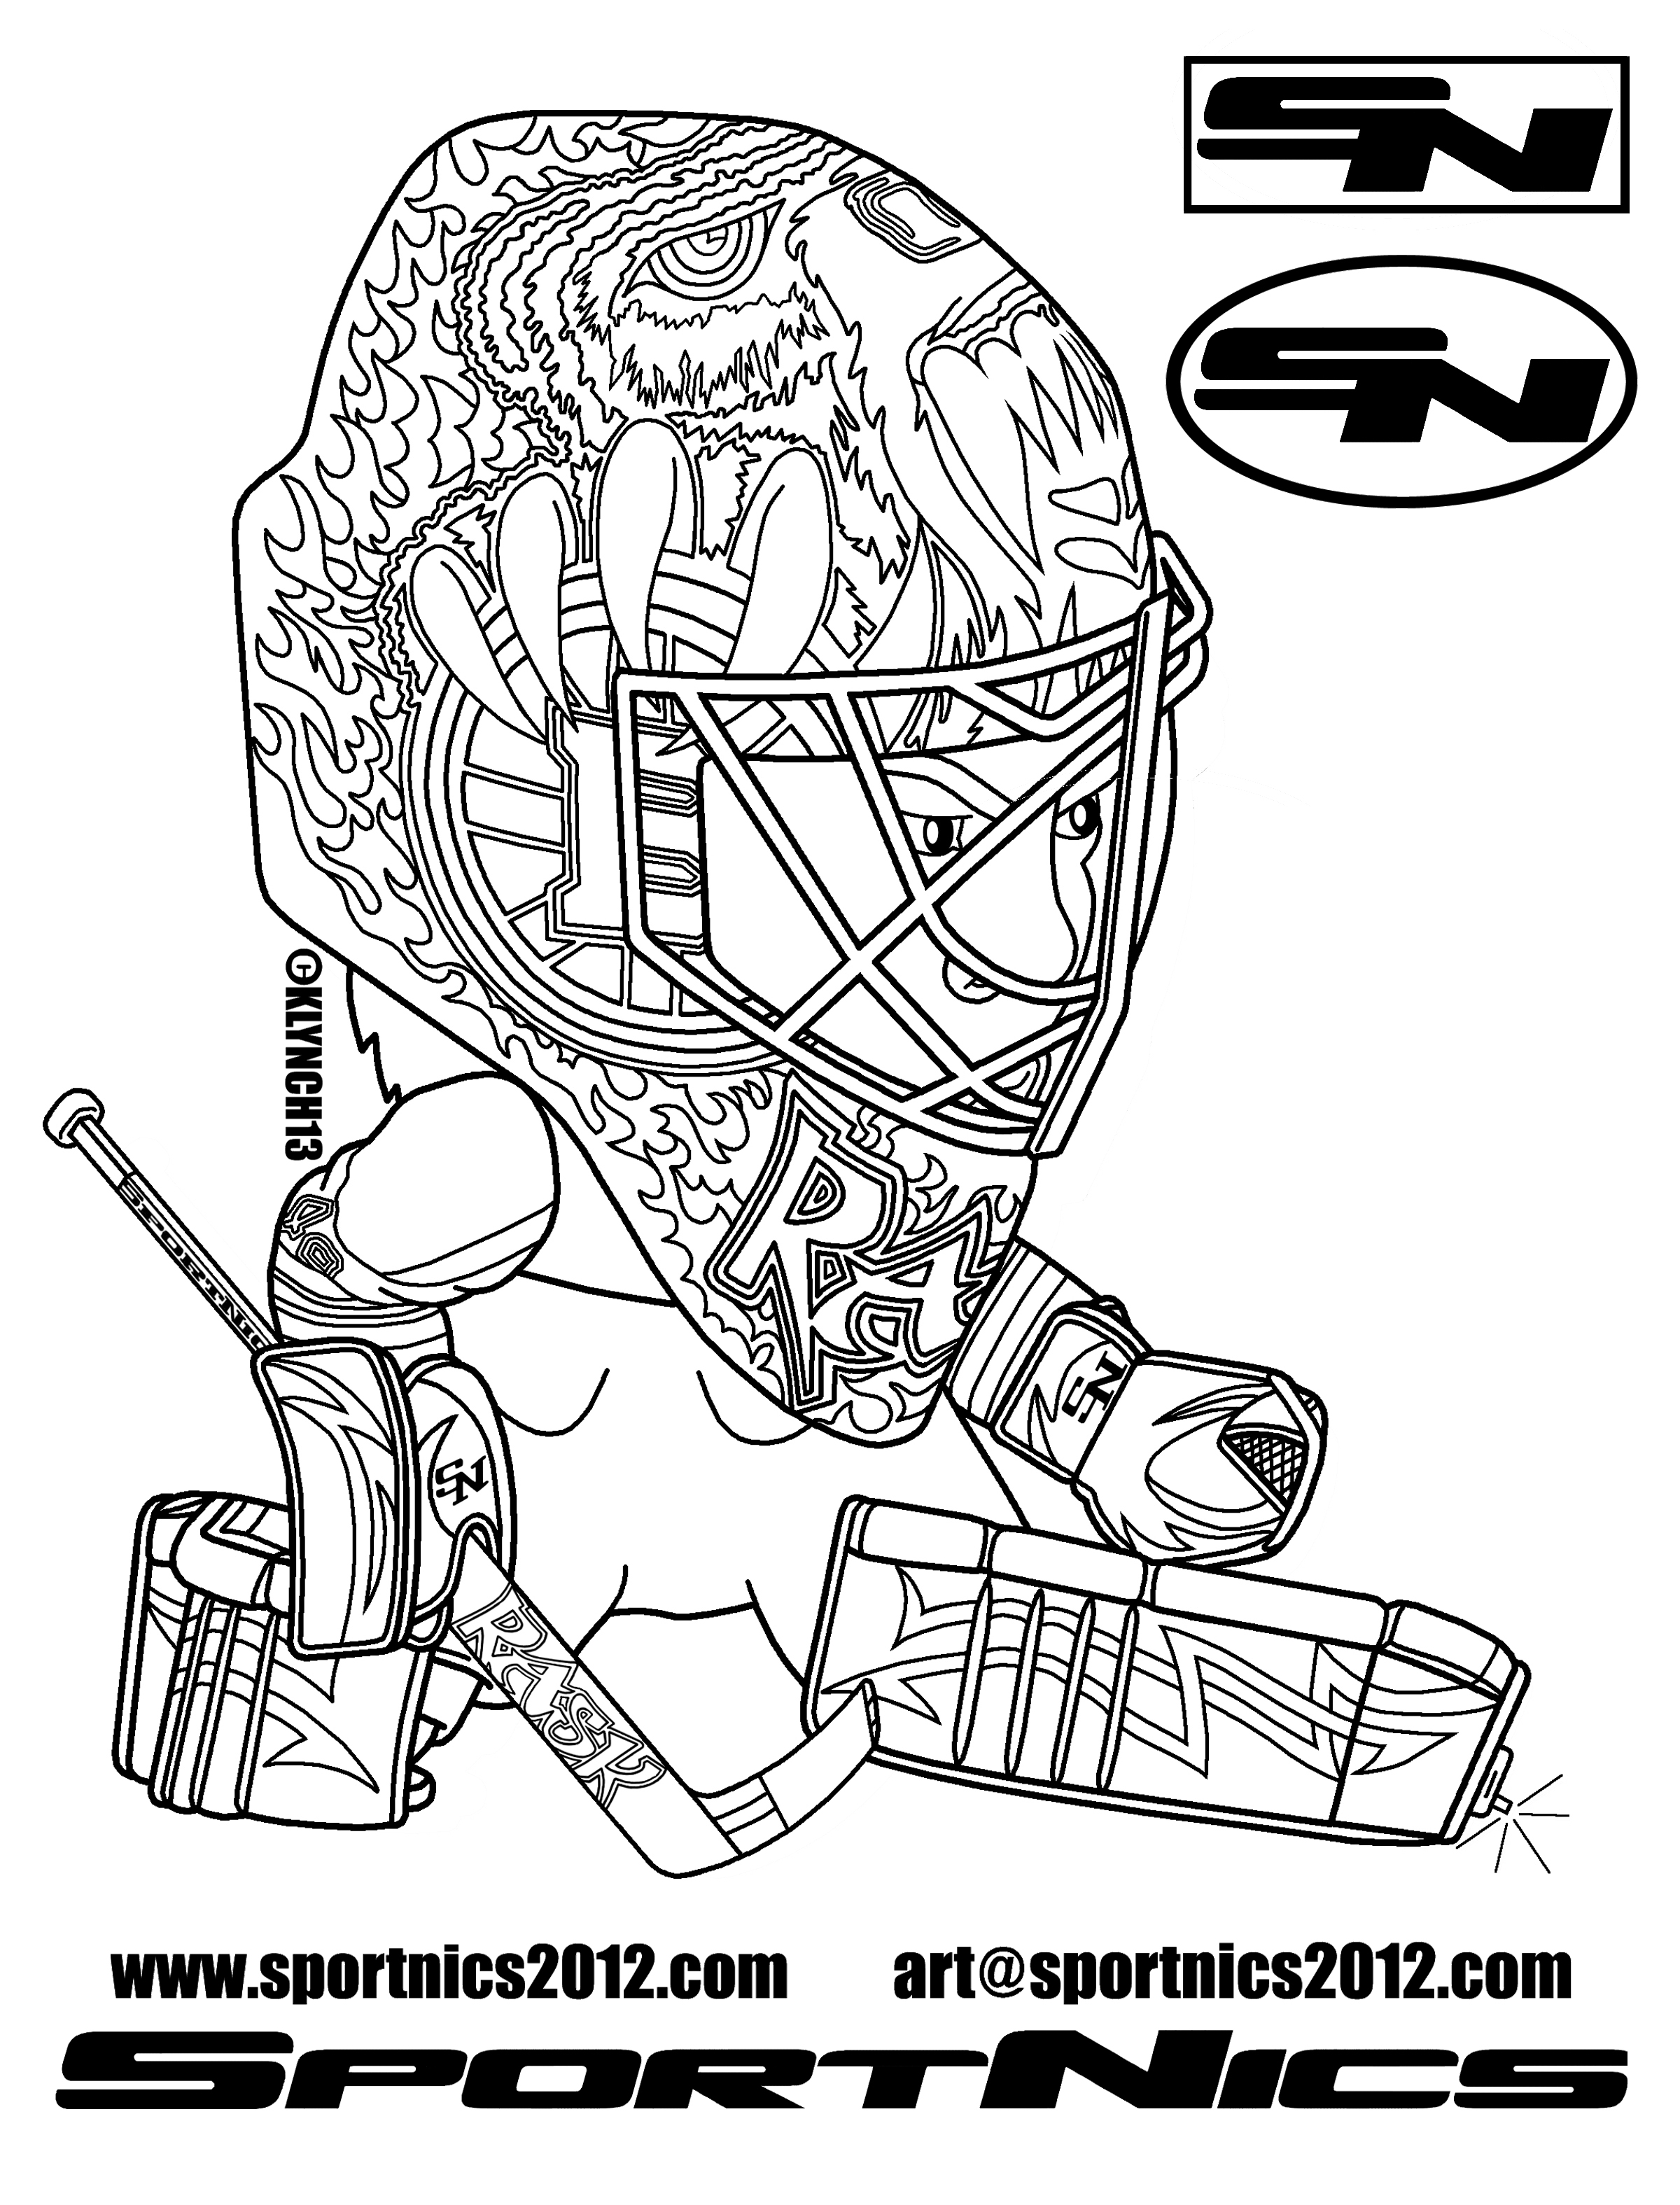 hockey goalie mask coloring pages hockey goalie drawing at getdrawings free download pages goalie mask coloring hockey